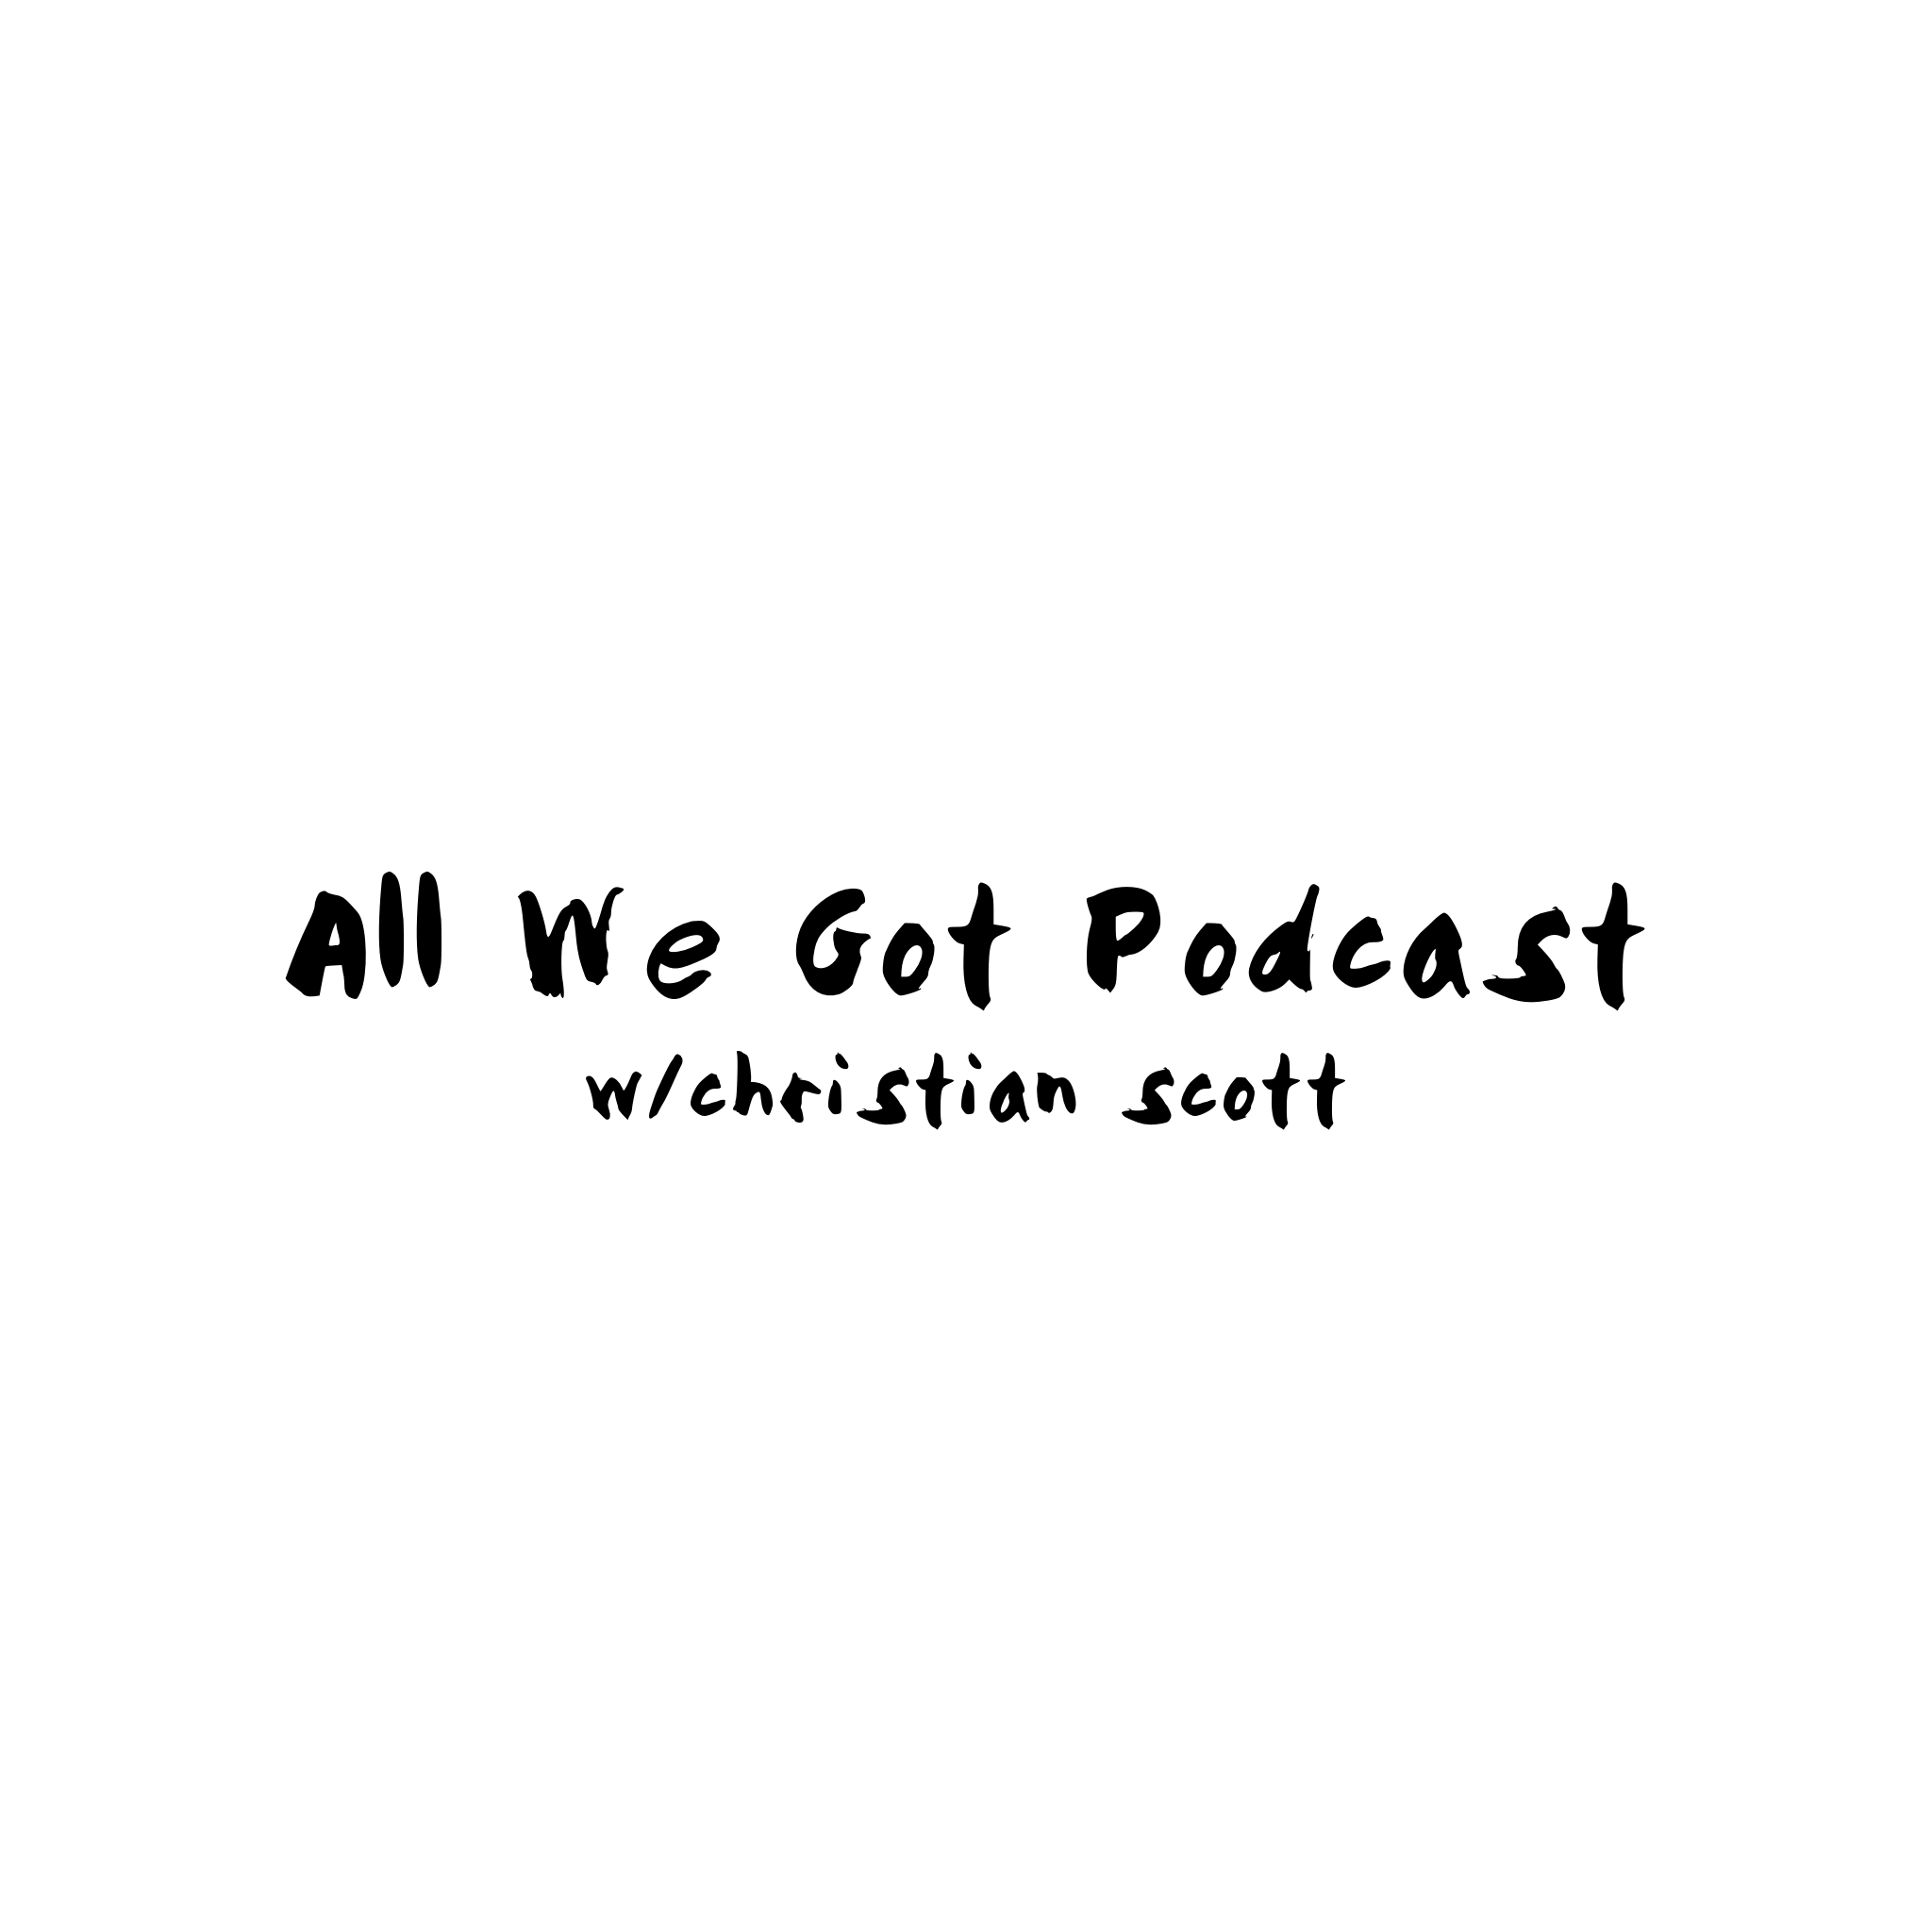 All We Got Podcast show image